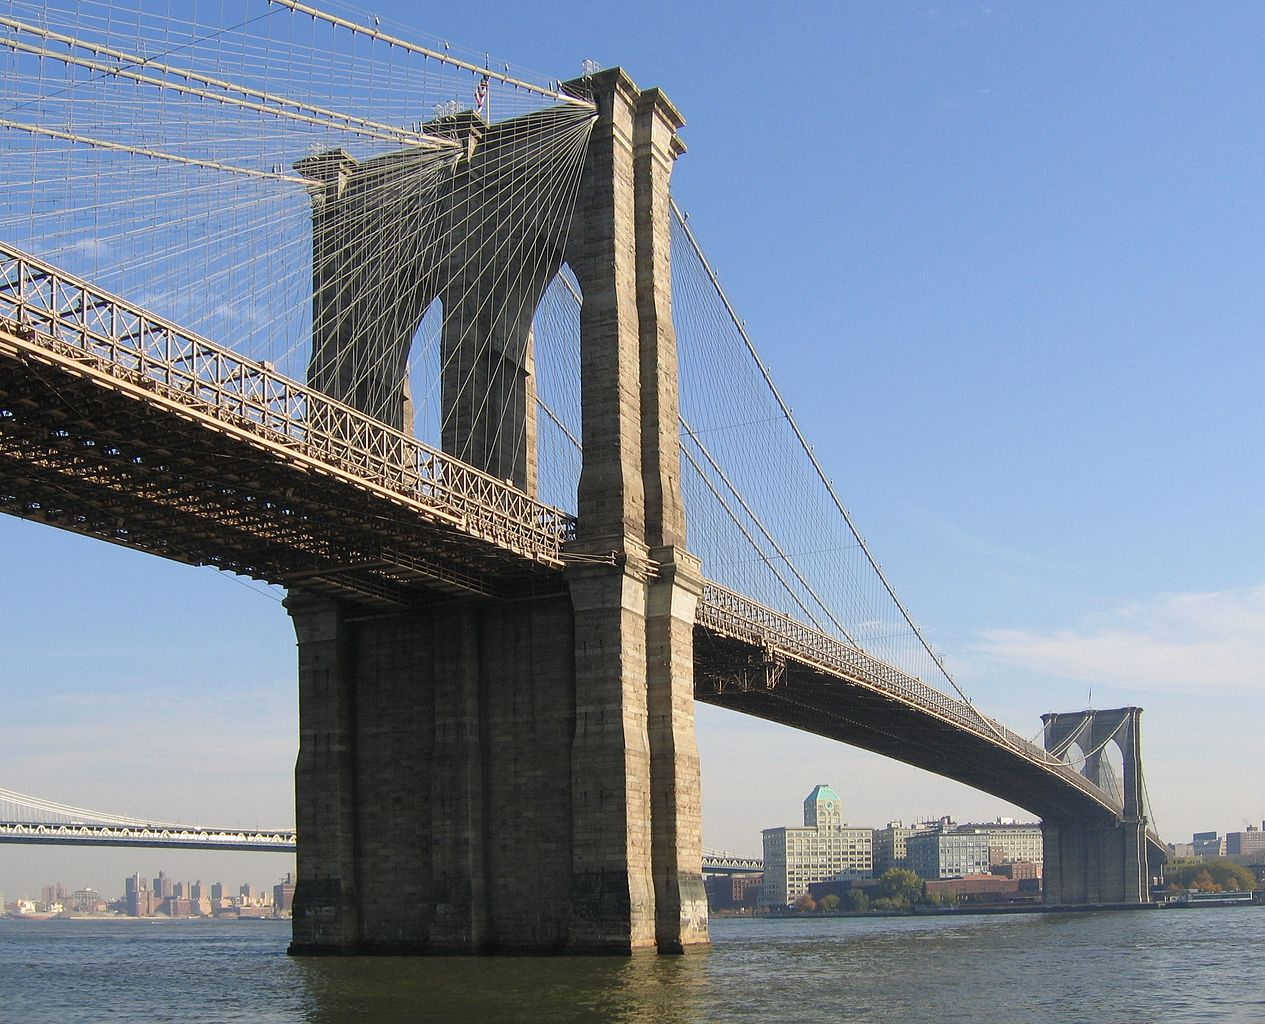 Best Attractions In New York: Brooklyn Bridge